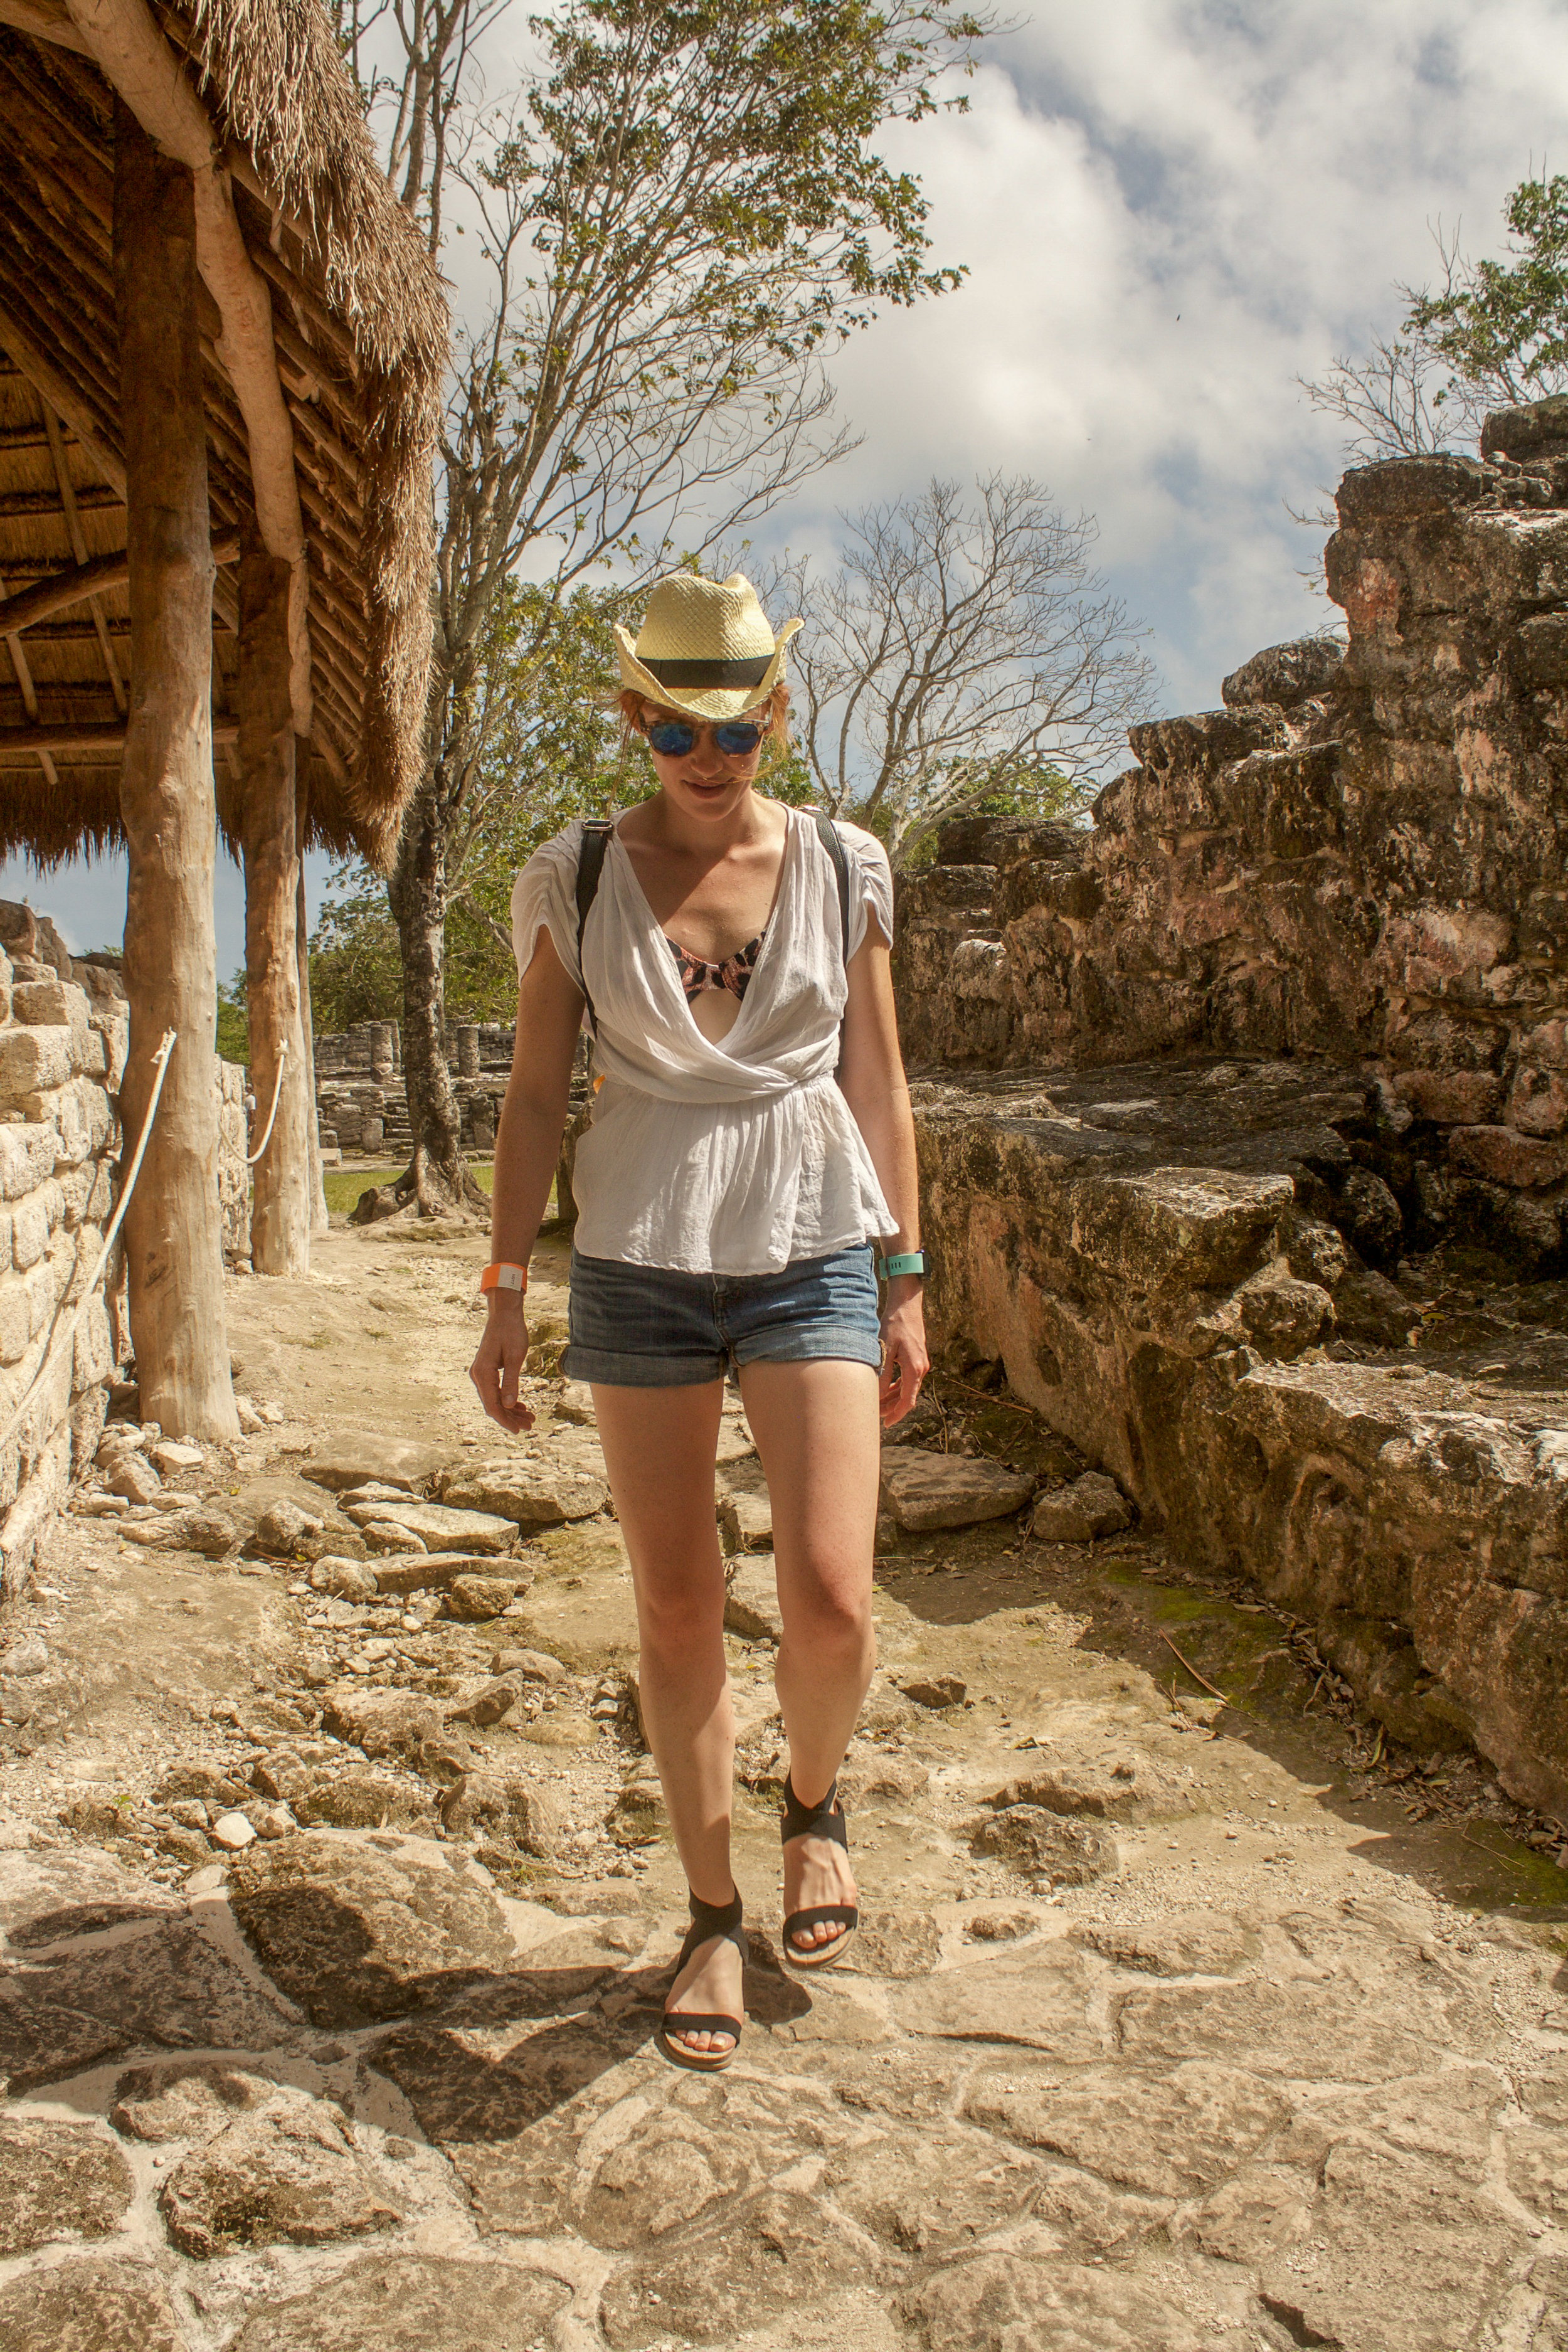 Tip Numero Tres - Unless you're a massive Mayan history buff, forego the guided tour at San Gervasio. Grab a map, wander around, and absorb the information on the plentiful signs detailing the history of the structures. You can easily see the highlights here in about an hour's time.